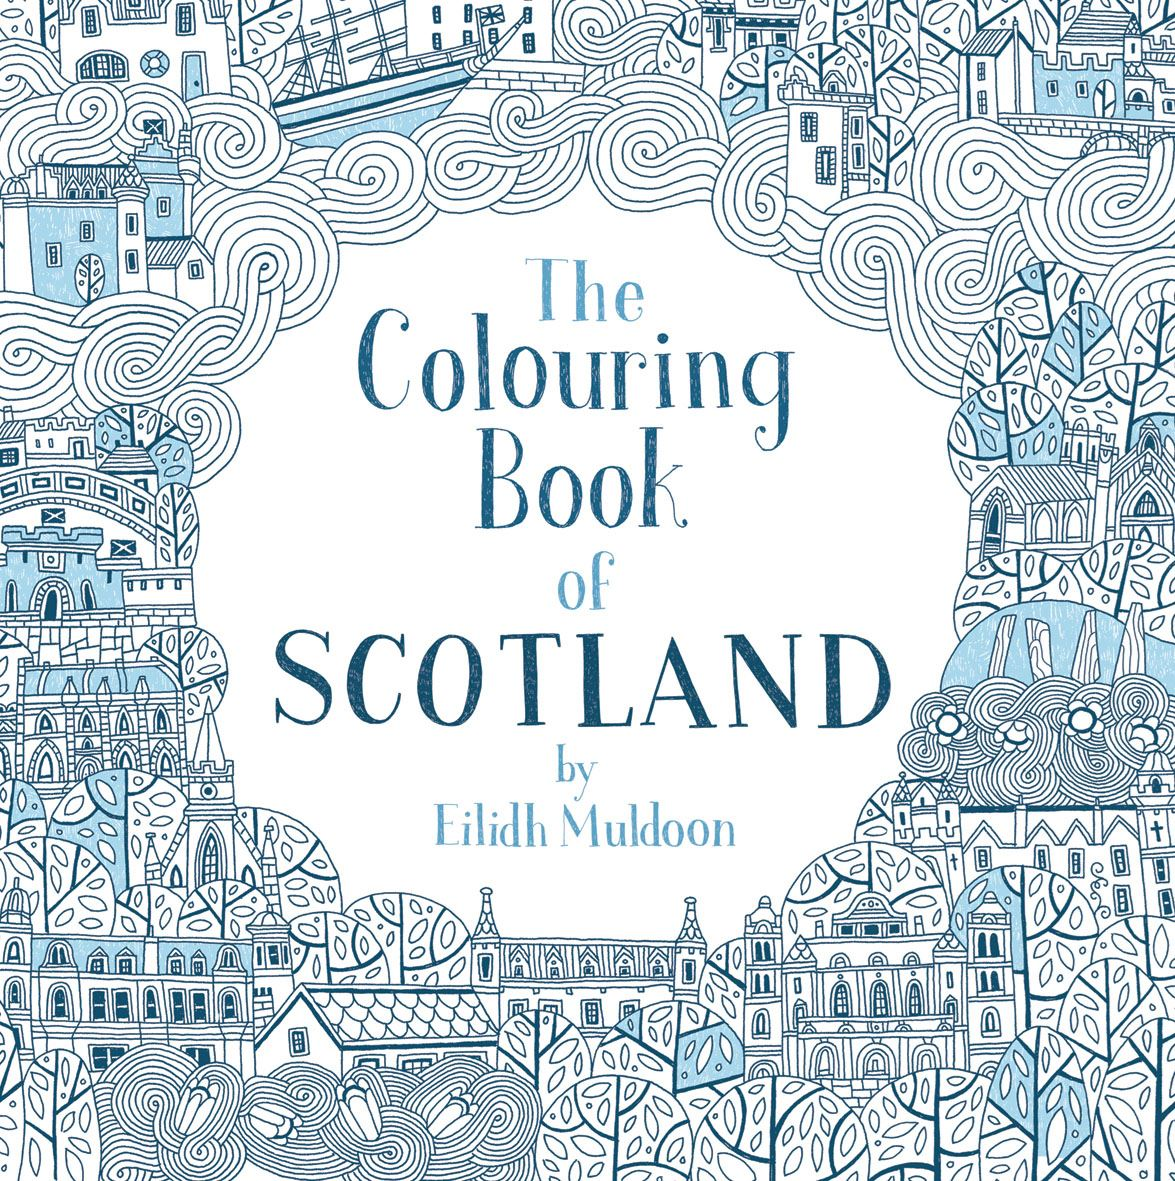 a colouring book detailing Scotland for little and big children!